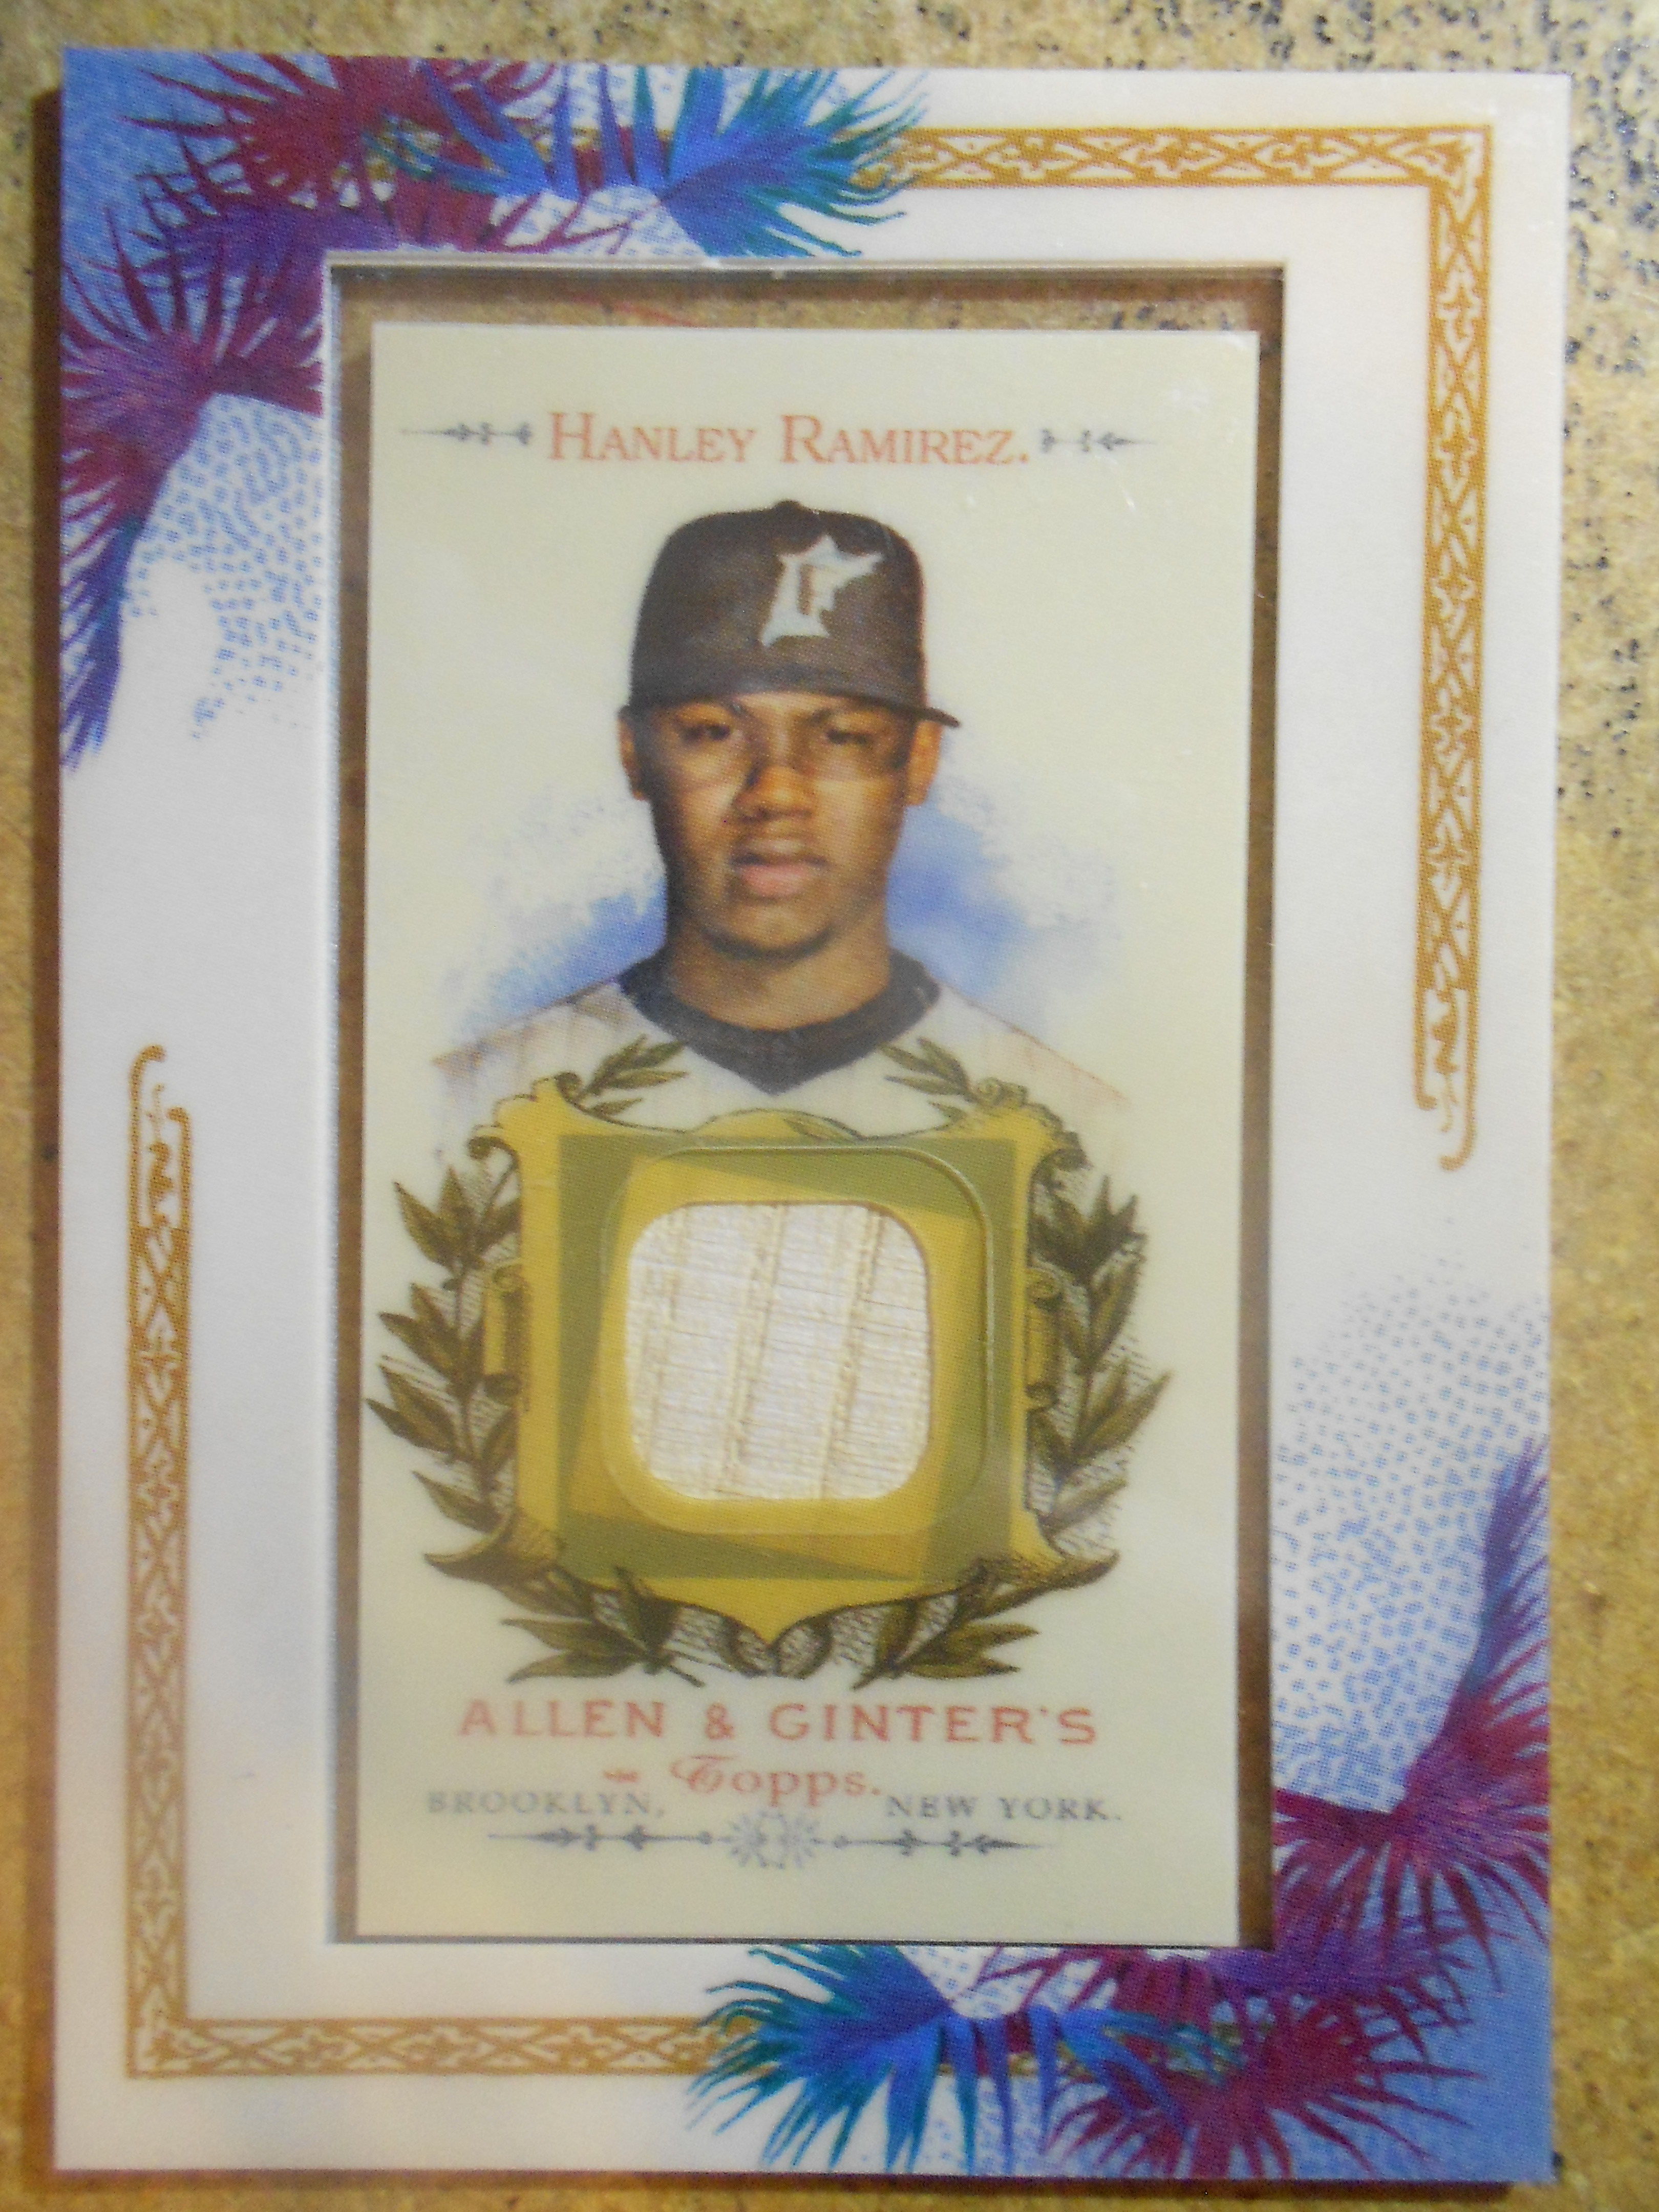 2007 Topps Allen and Ginter Relics #HR Hanley Ramirez Bat G